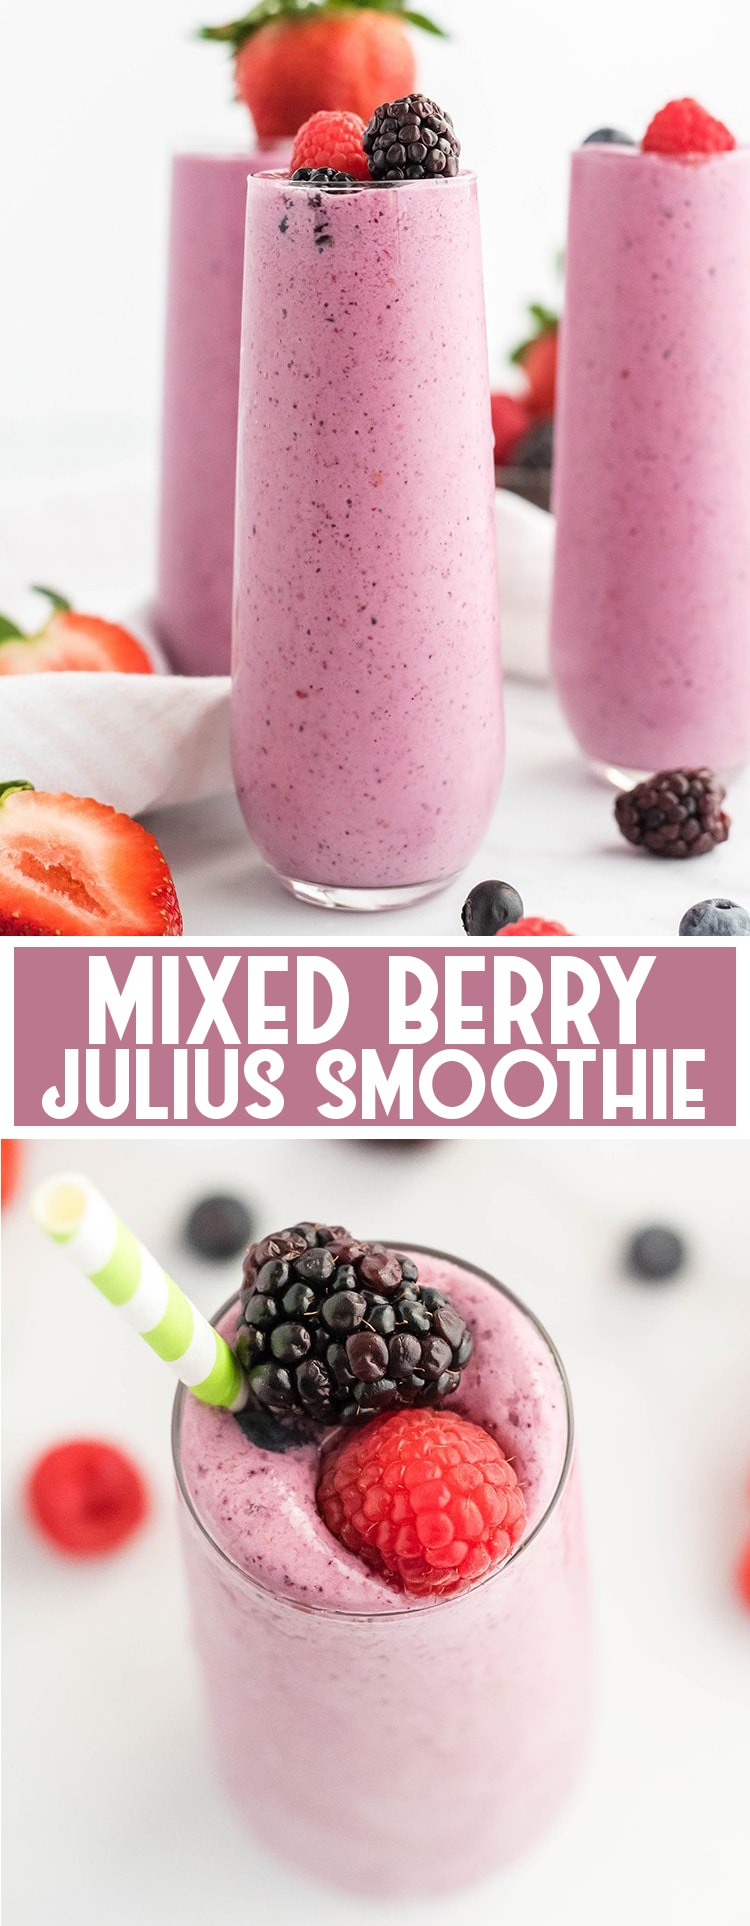 This mixed berry julius is a creamy, icy vanilla and triple berry smoothie. It's so refreshing and perfect for breakfast or a snack!